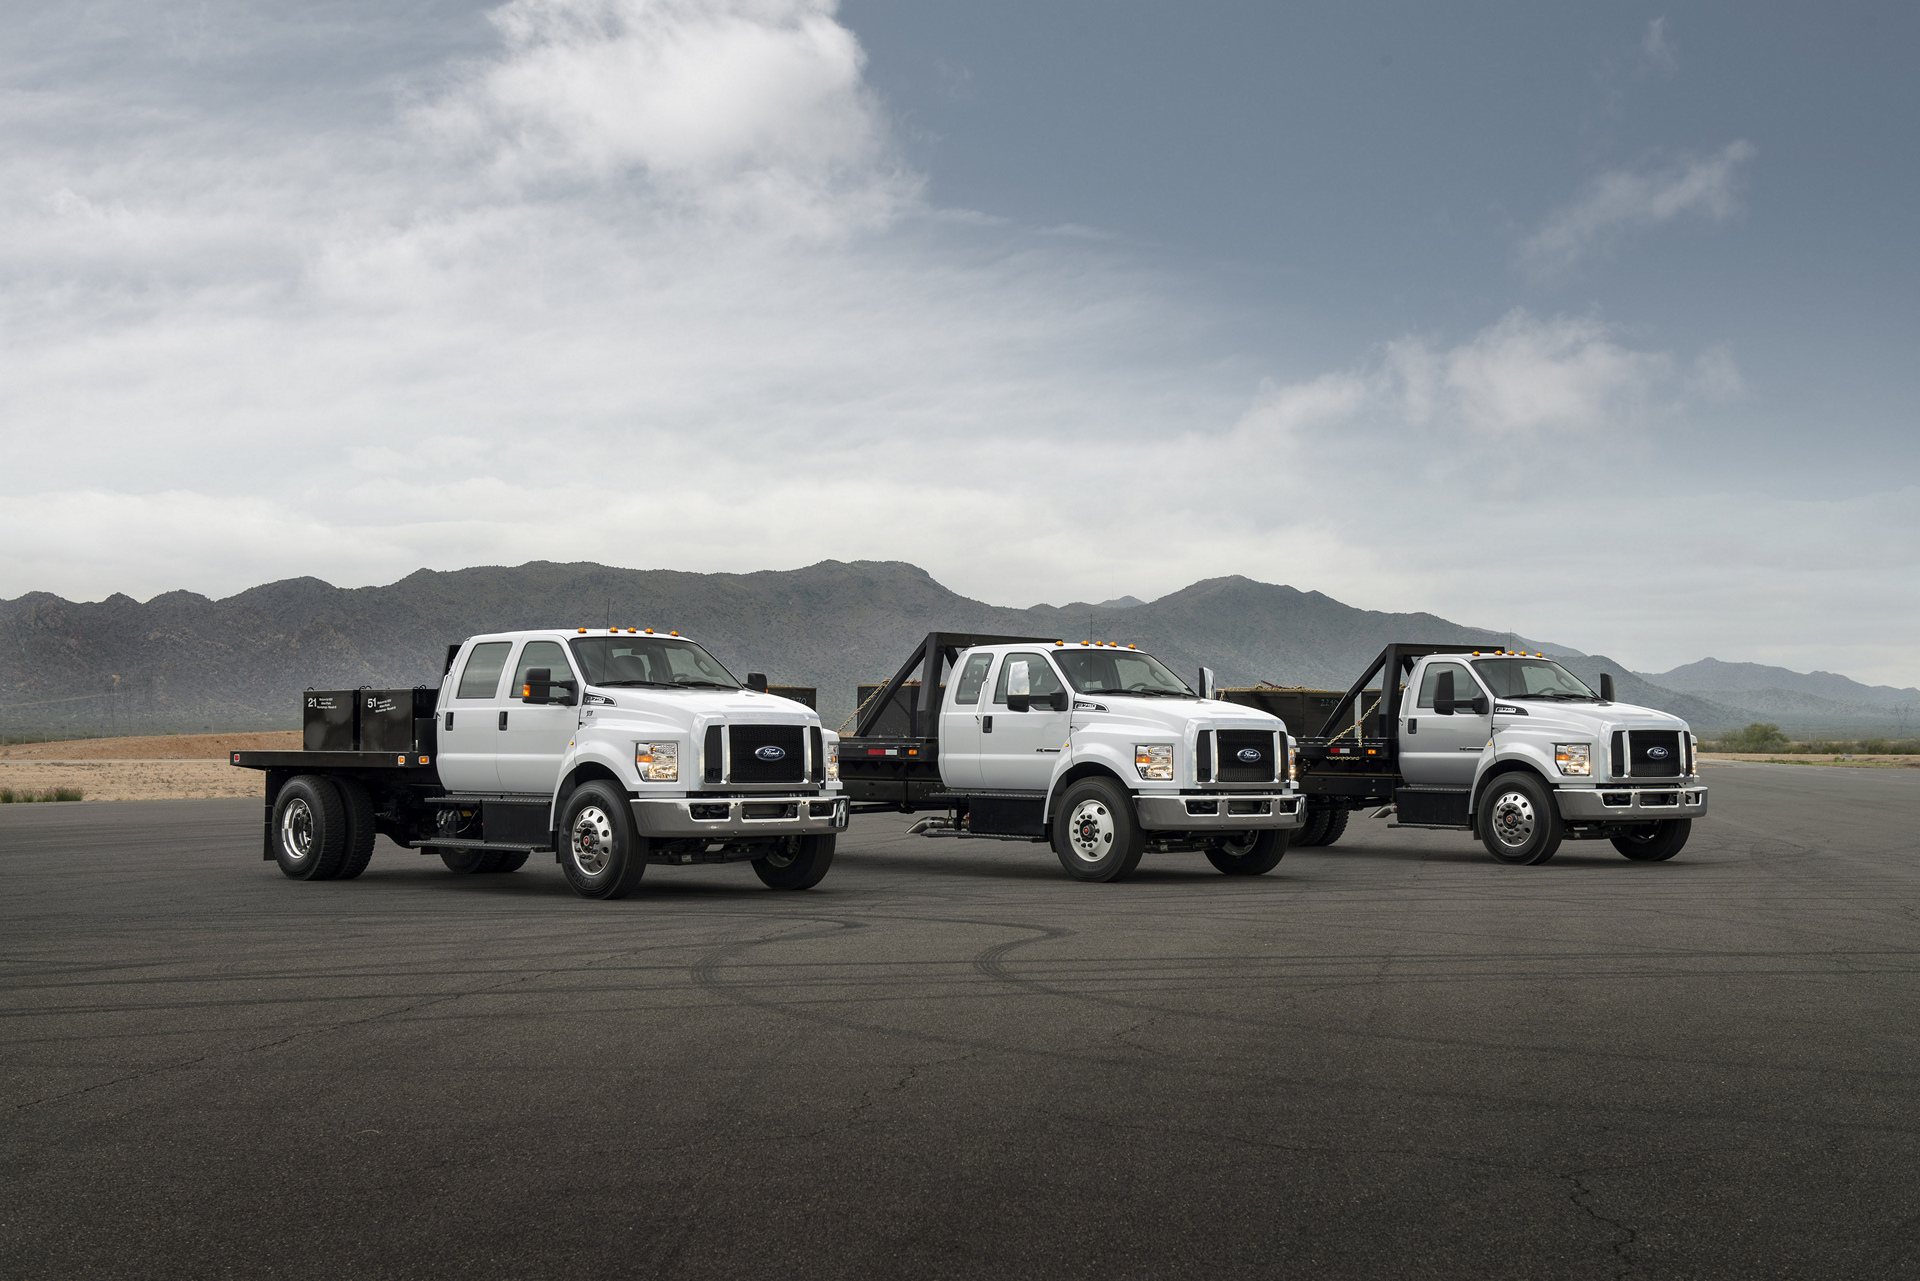 Ford F-650 and F-750 Trucks © Ford Motor Company